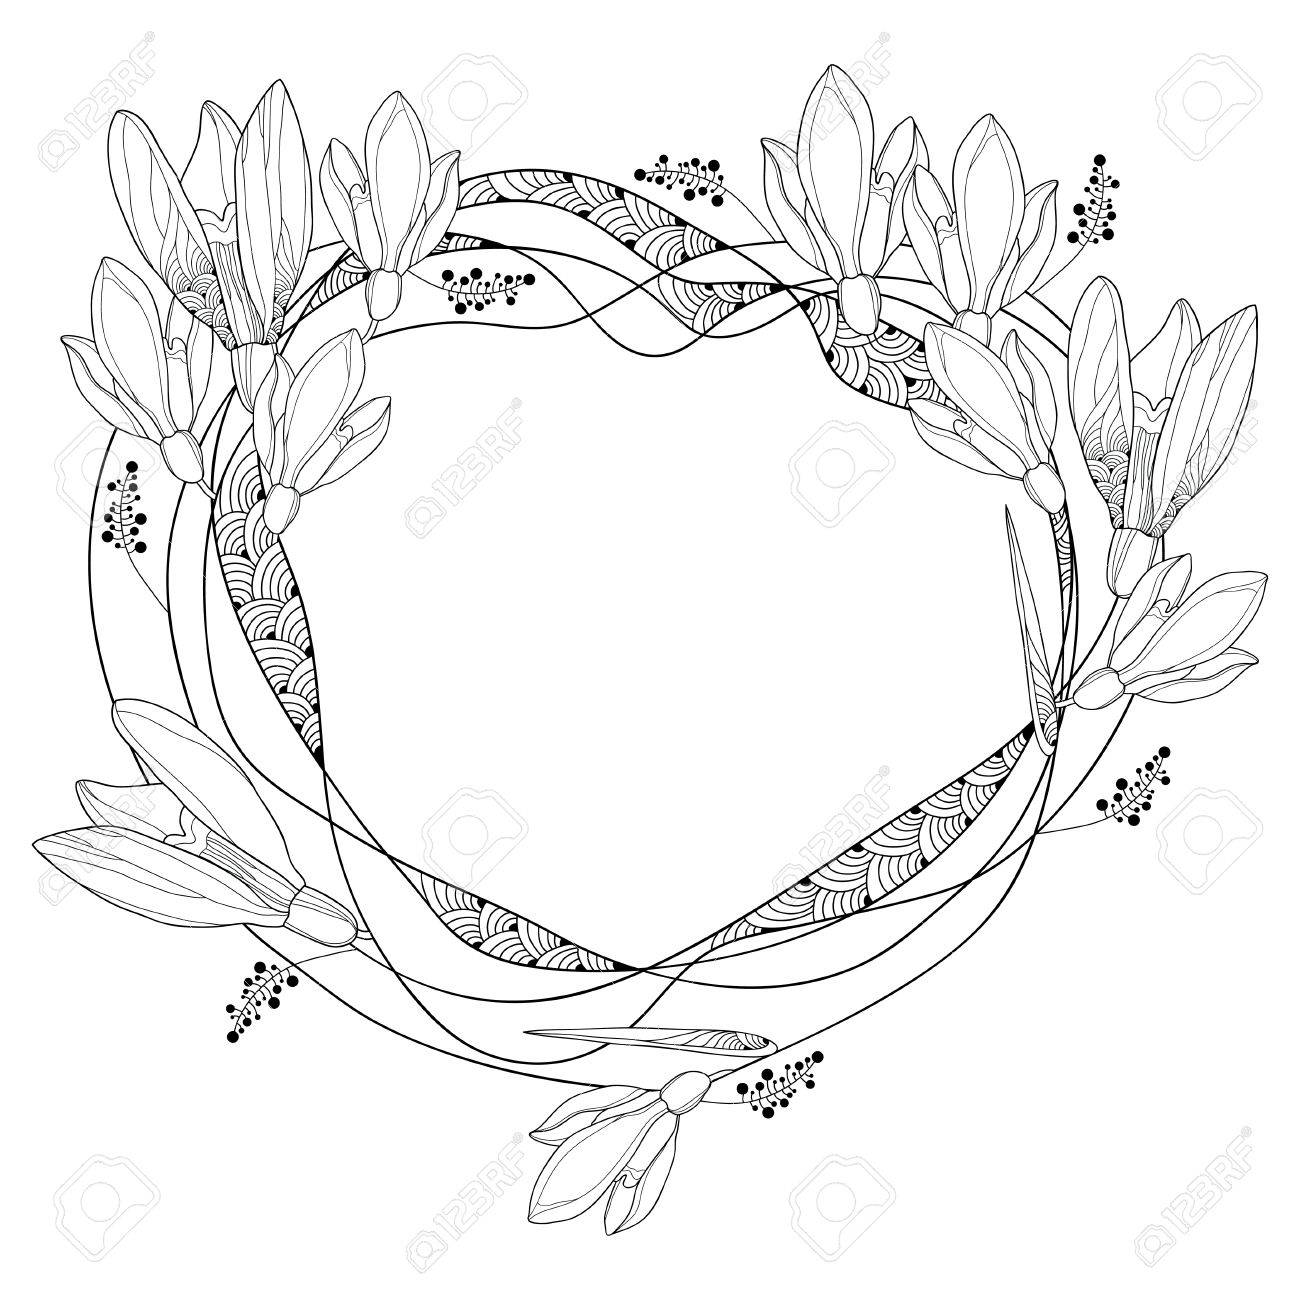 Round frame with ornate outline snowdrop flowers or galanthus round frame with ornate outline snowdrop flowers or galanthus isolated on white background floral elements mightylinksfo